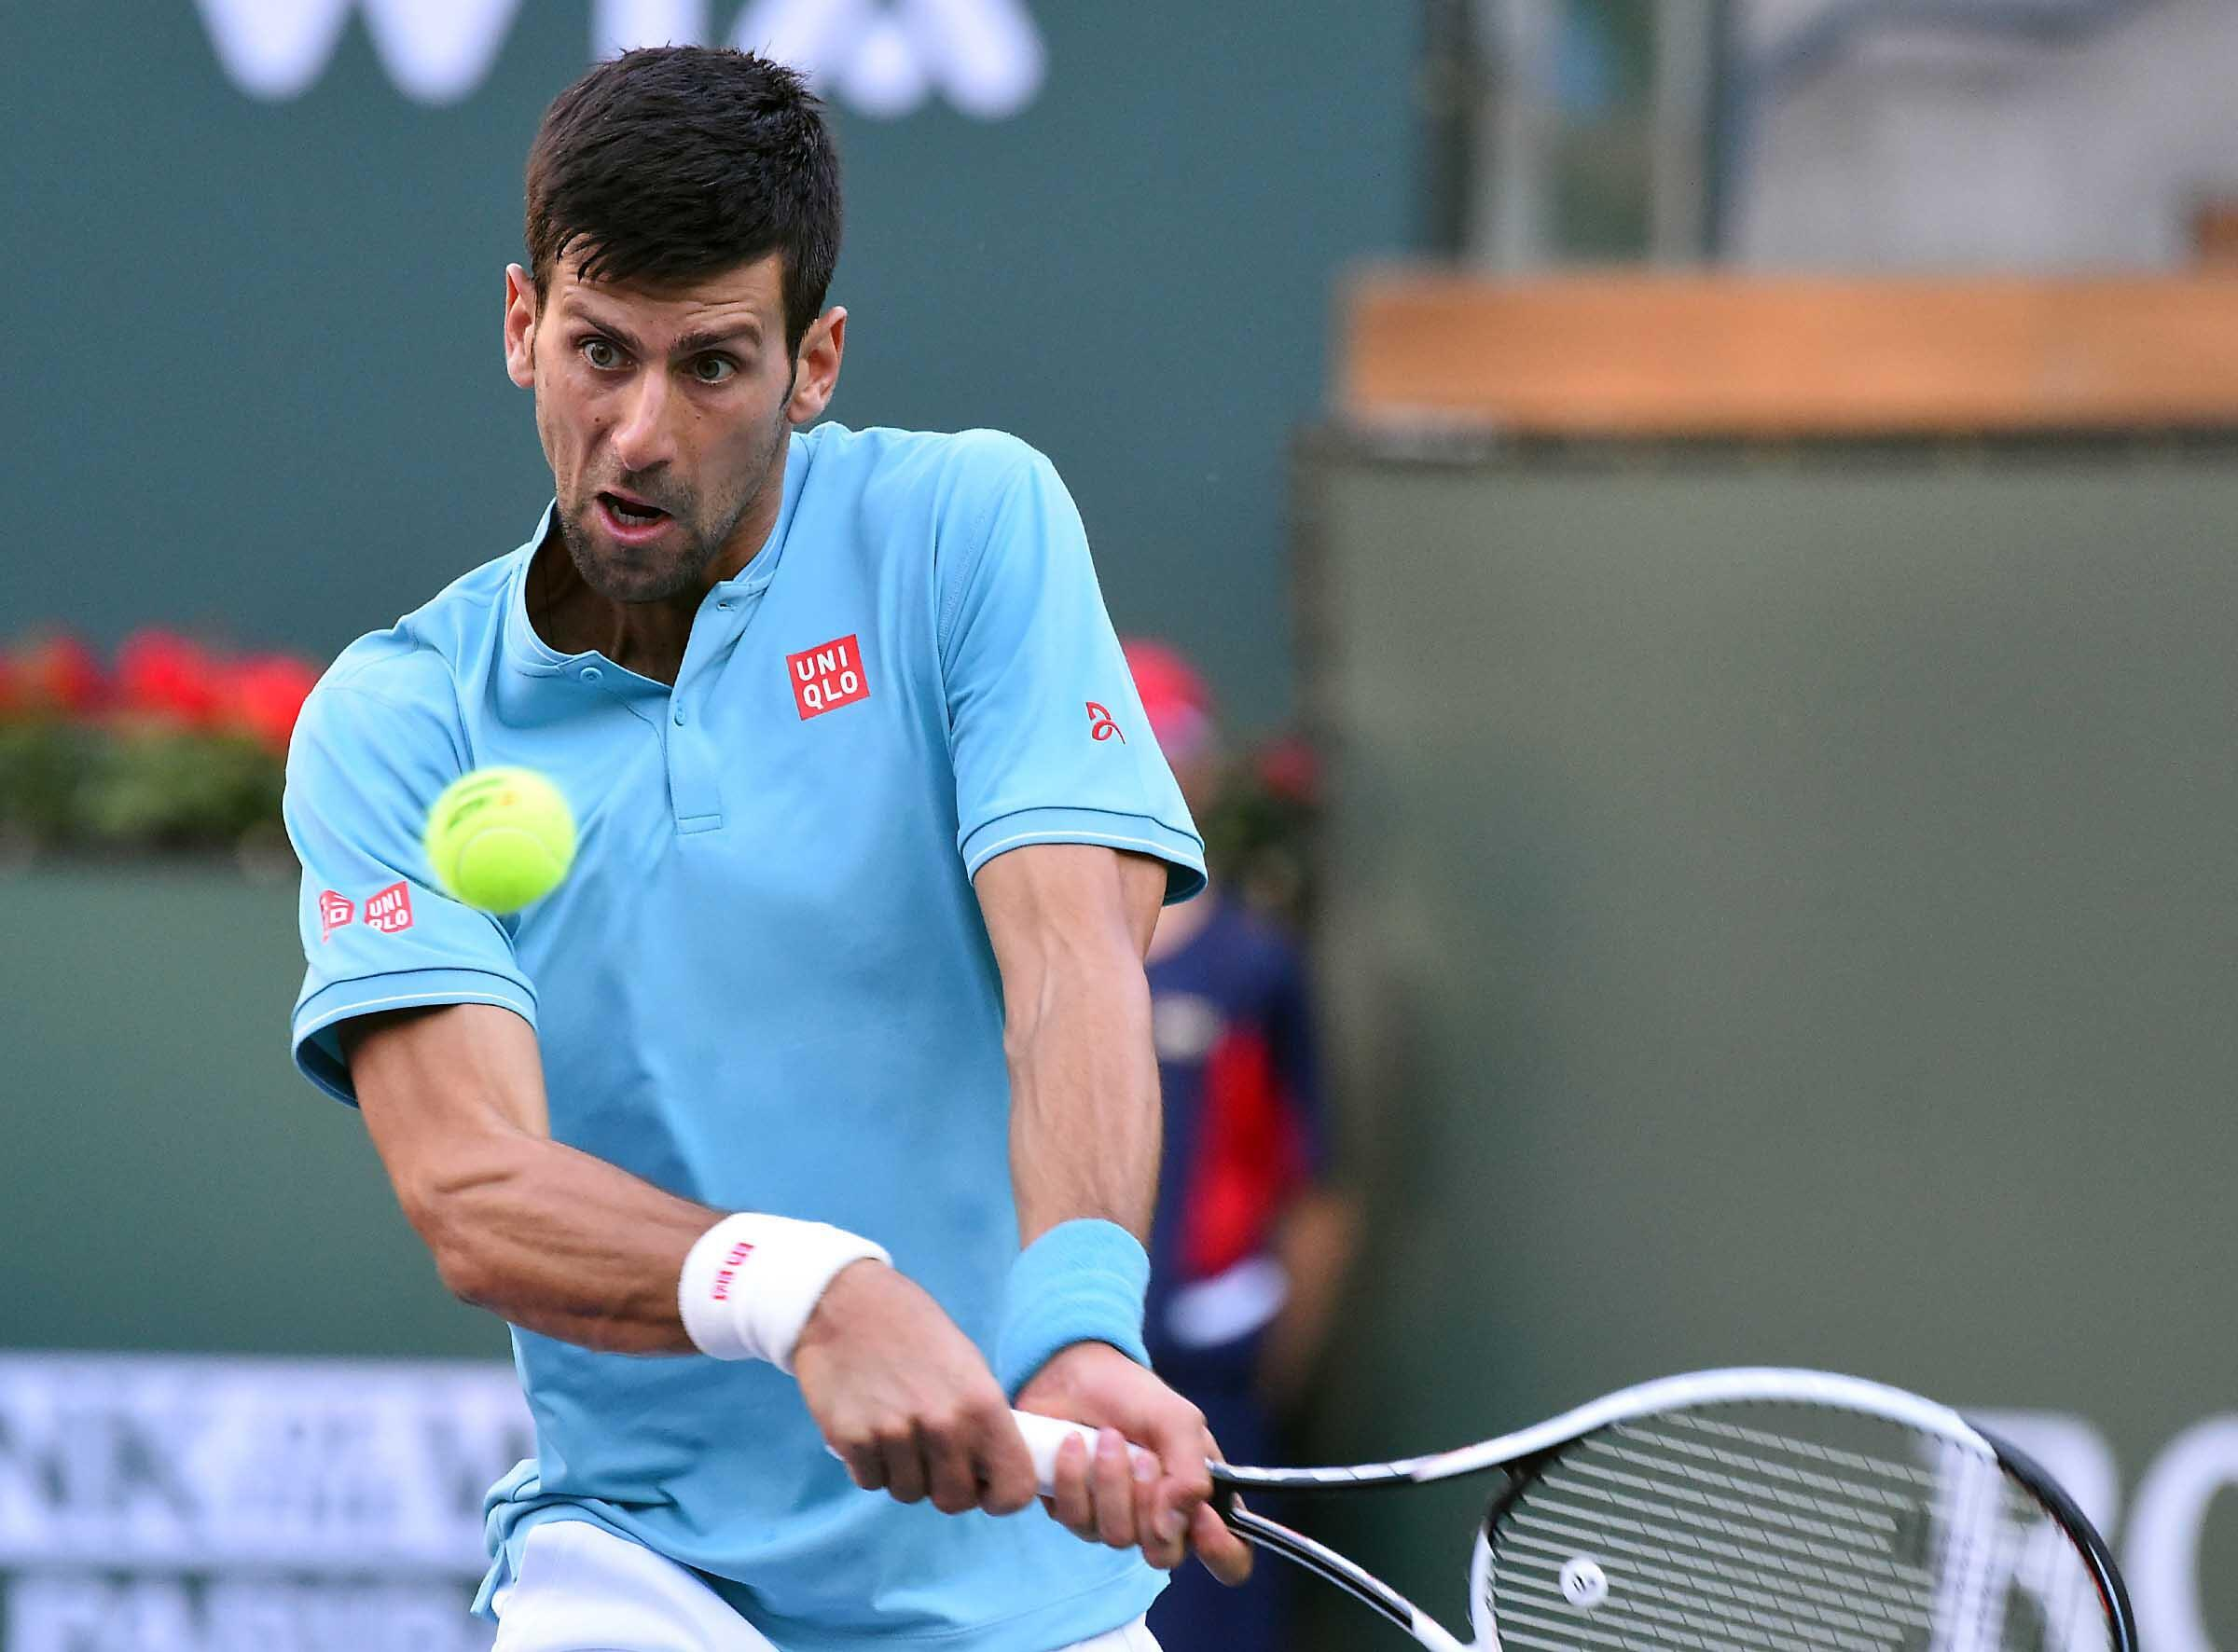 Novak Djokovic has said he will do his best to play against France in Davis Cup semifinals.